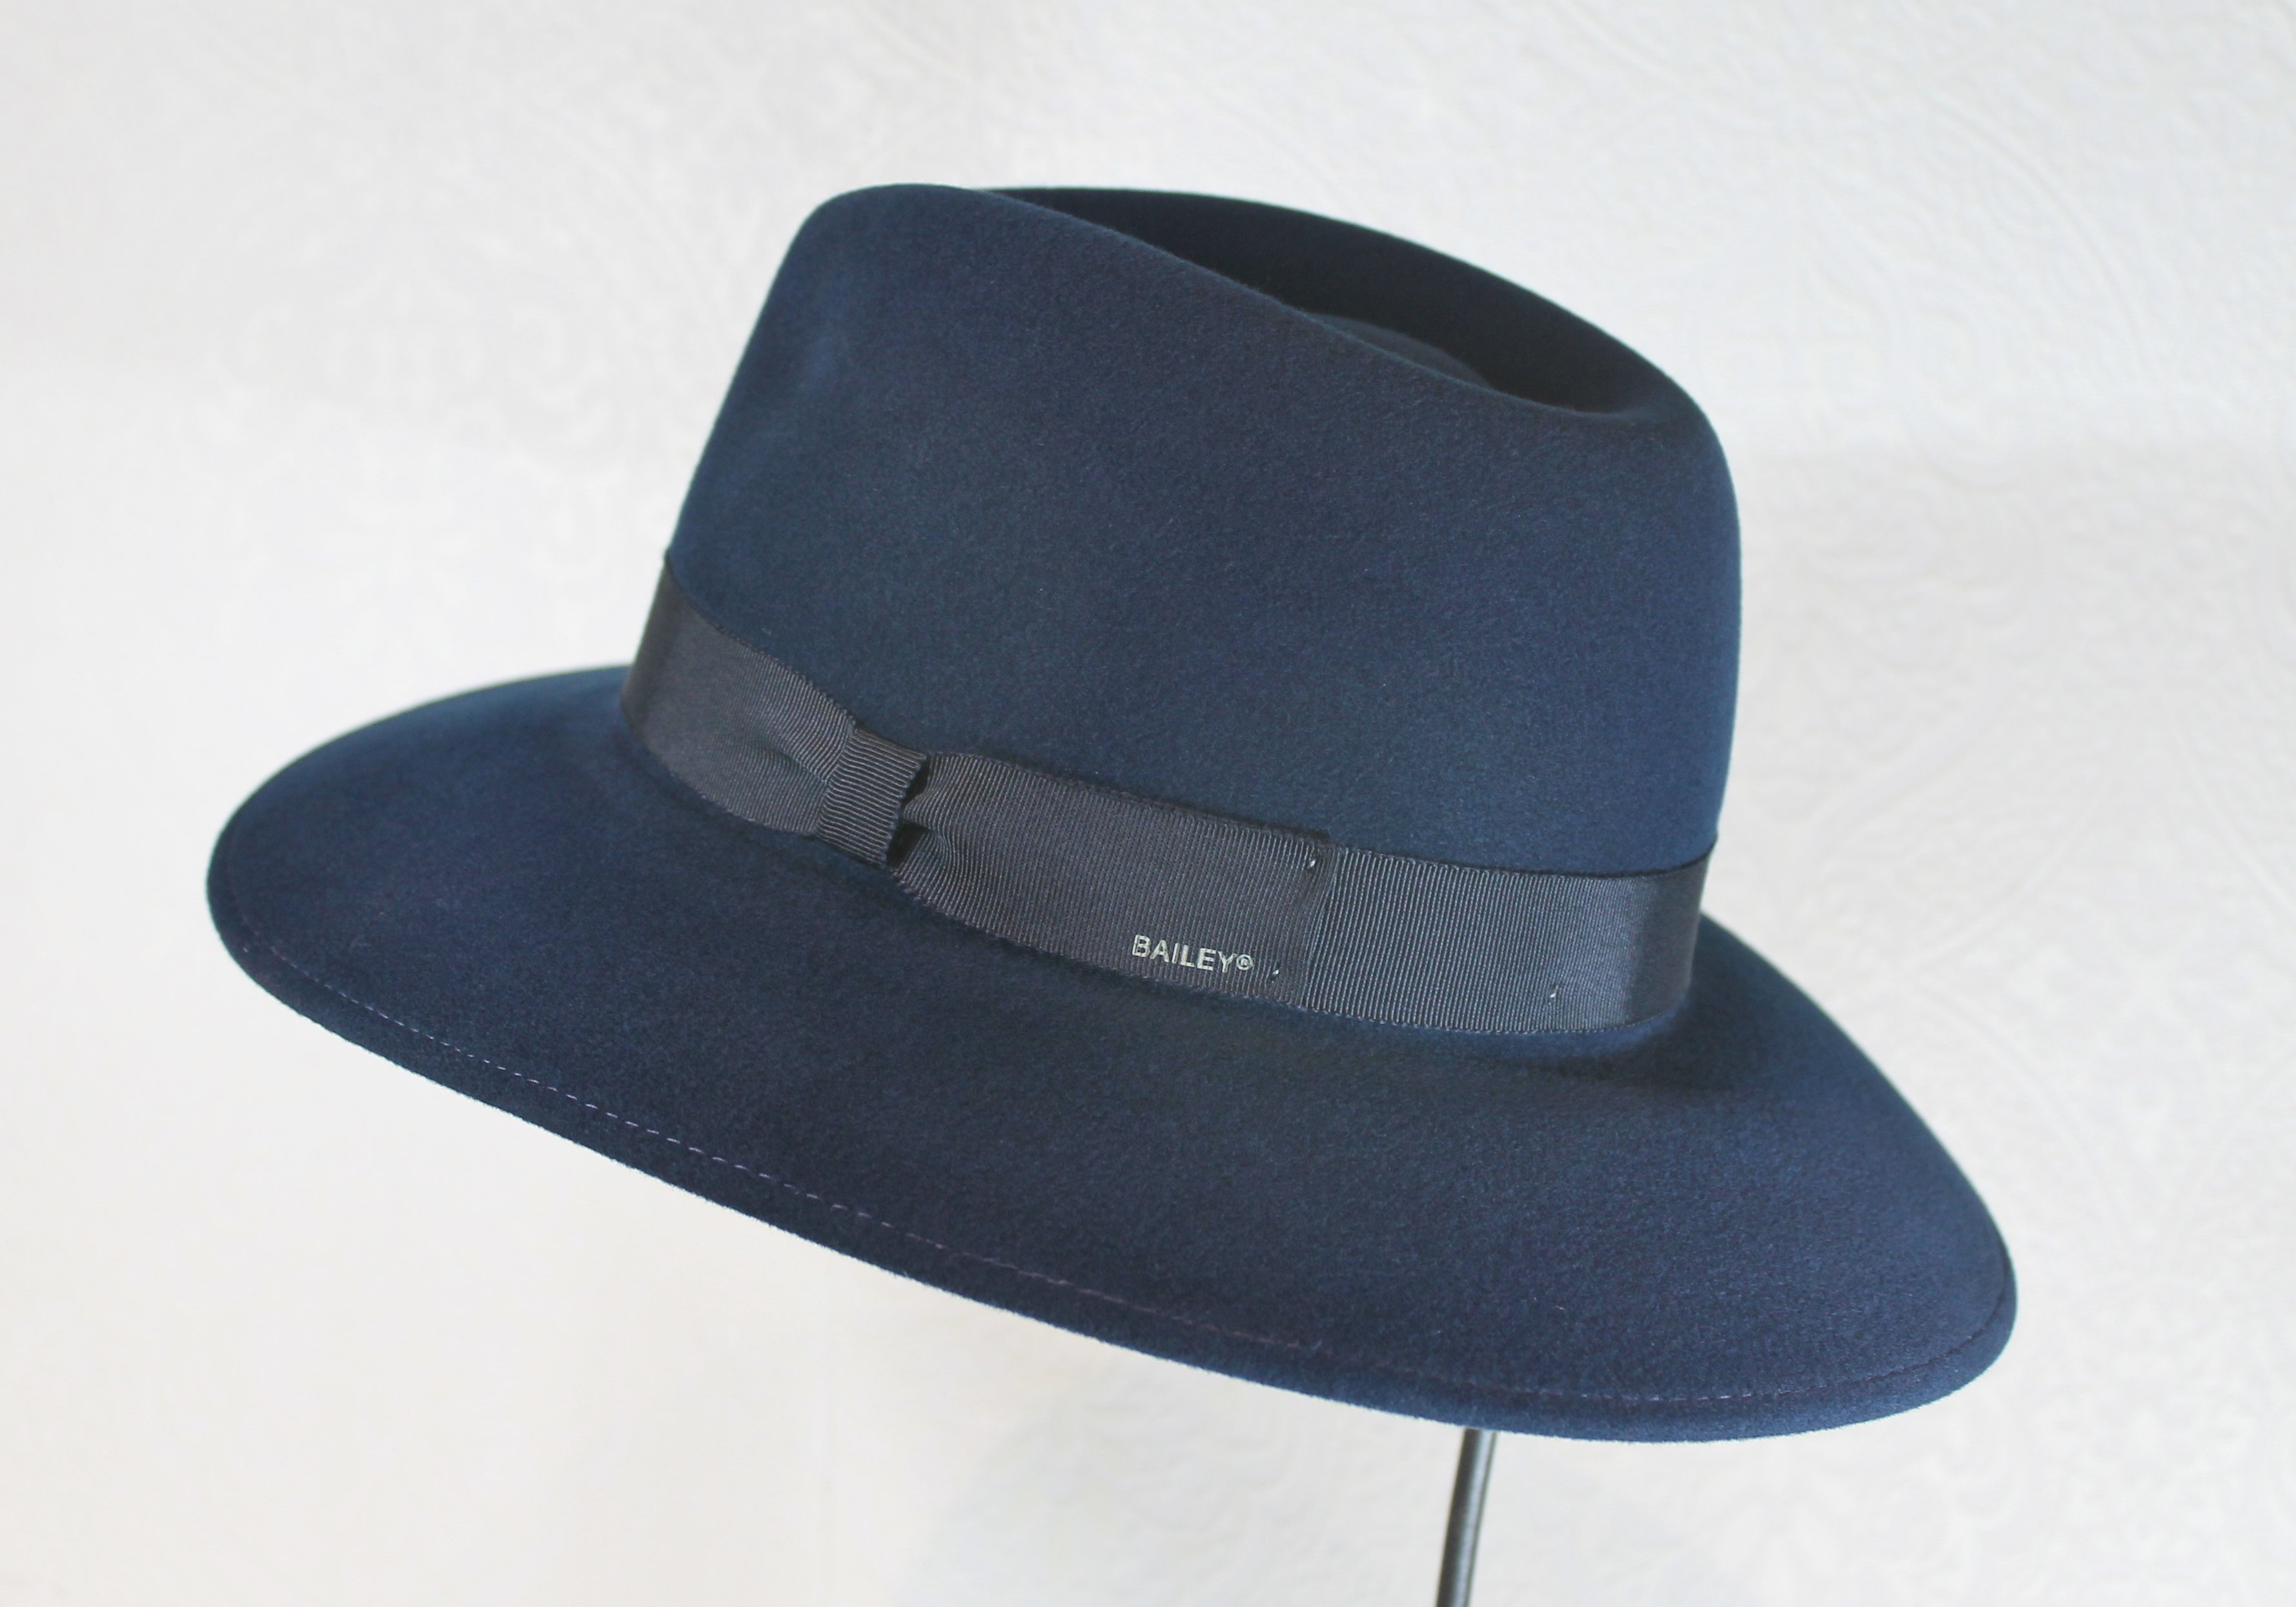 4b1b42abd7698 super soft fedora wide brim makes for a great rain hat made in the U.S.  Shop local! Bonnet, Portland's locally owned hat shop and millinery